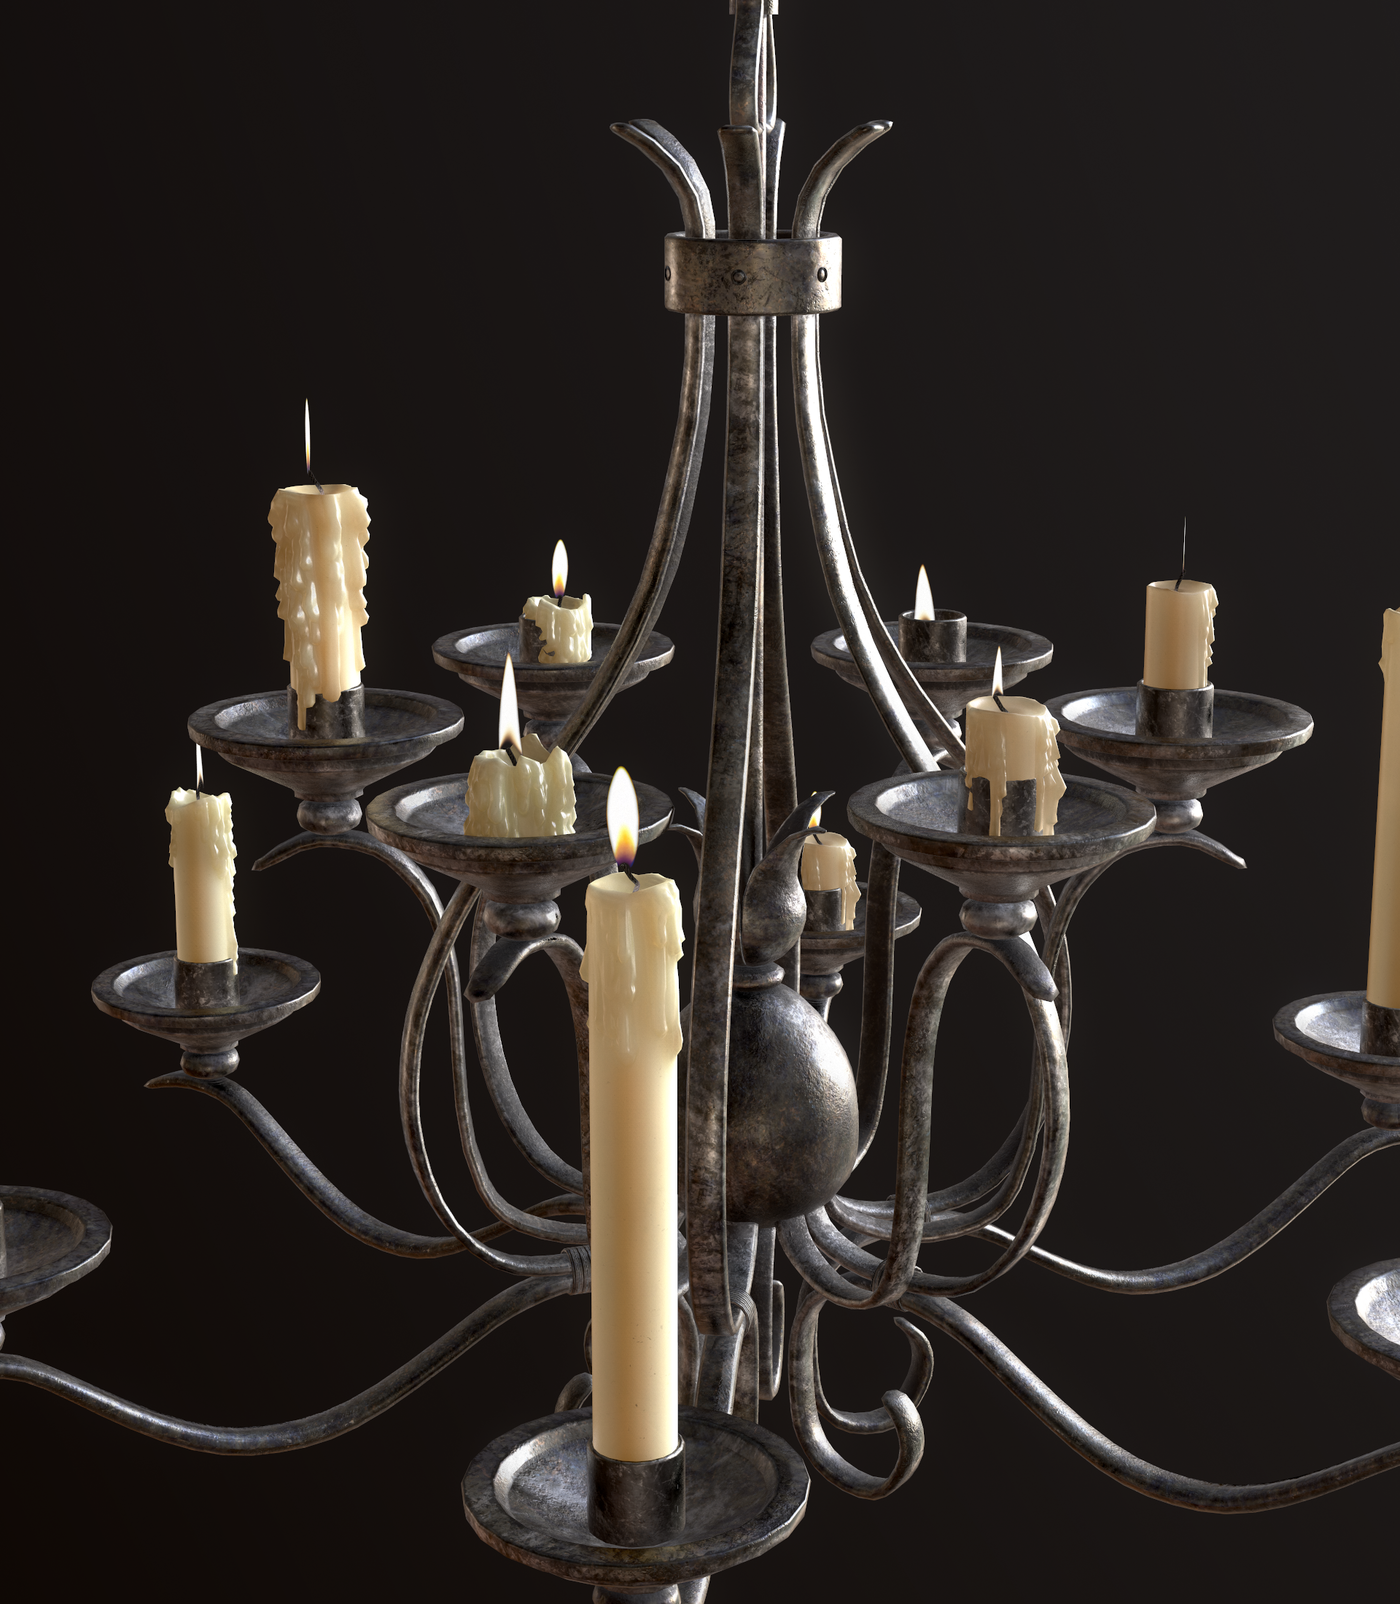 Old Medieval Chandelier with Candles